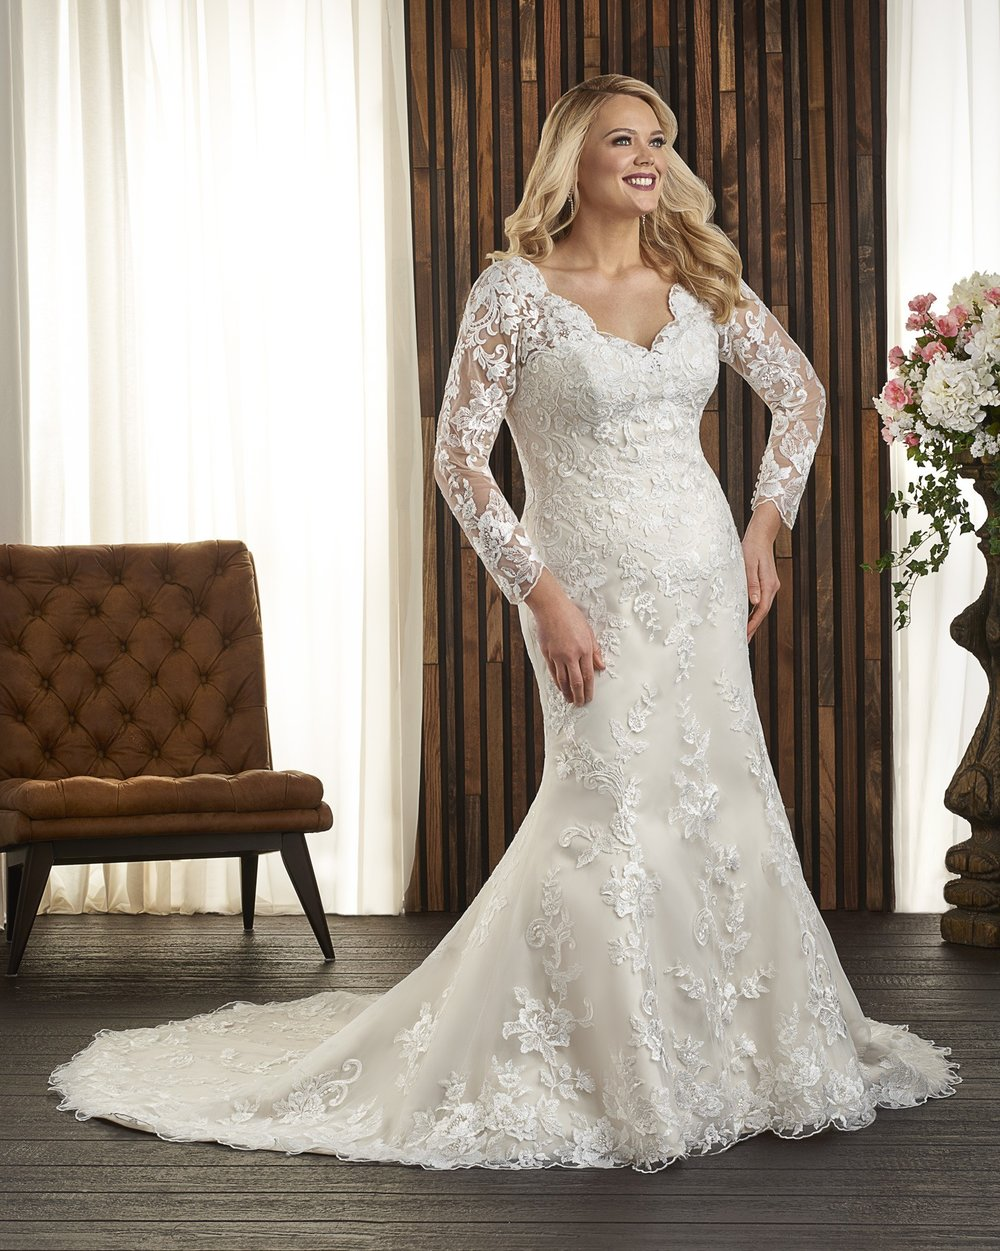 BonnyBridal-BridesbyYoung-PlusSizeWeddingDress-1717.jpg